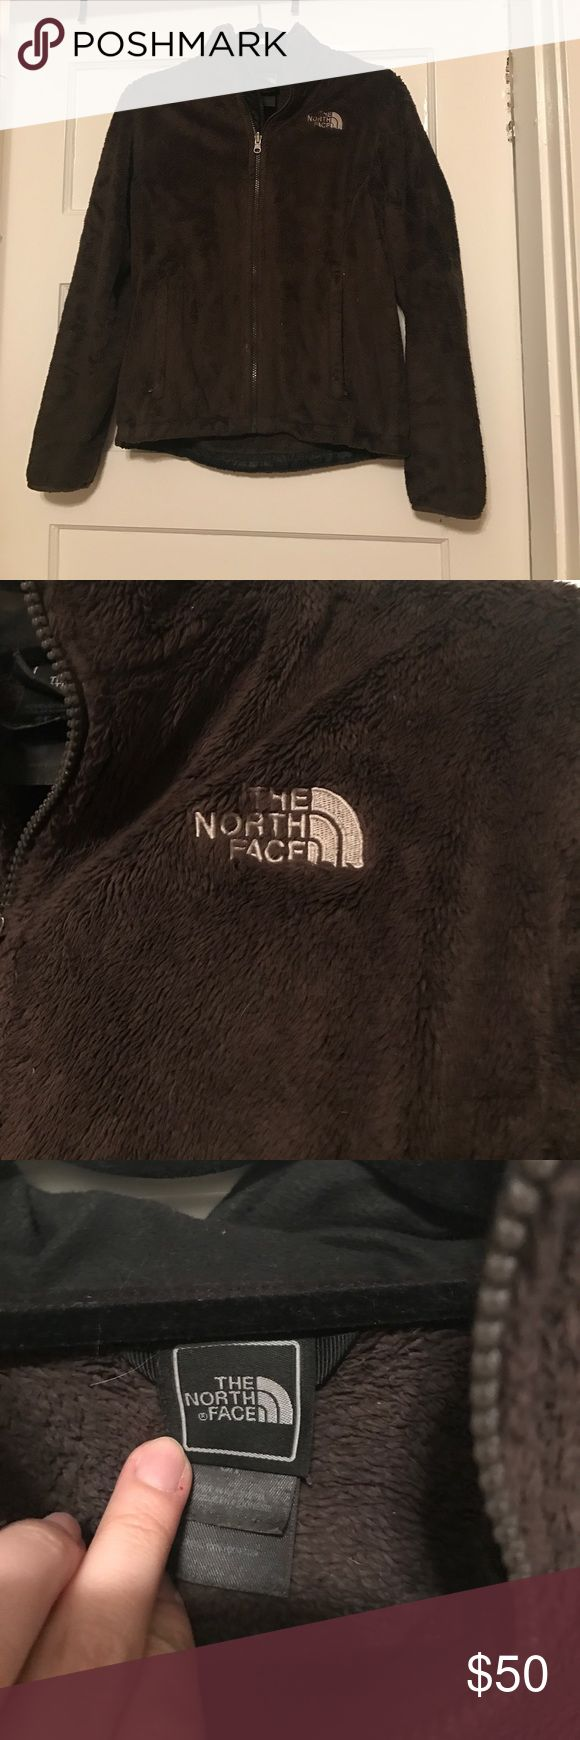 🔴CLEARANCE Fuzzy North Face jacket Brown fuzzy North Face jacket. Perfect to use as a liner in another Jacket or wear on its own! Excellent condition. The North Face Jackets & Coats